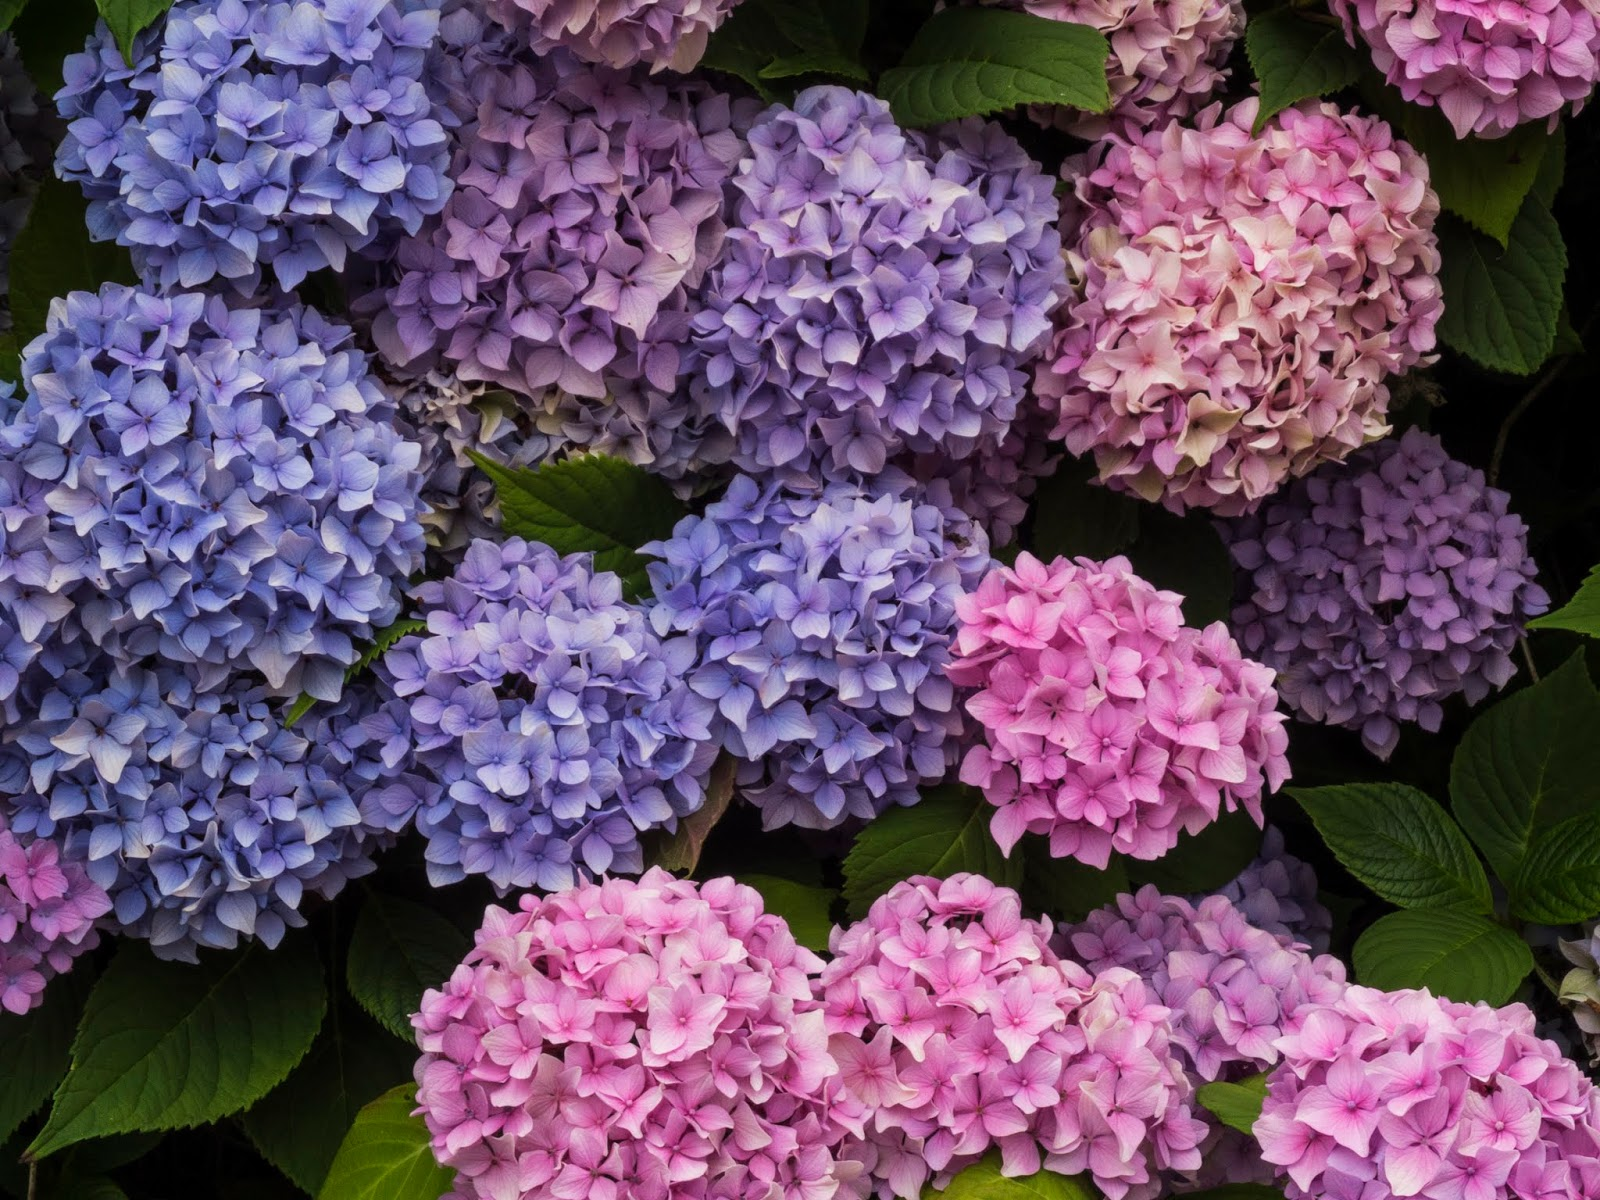 Blue and pink Hydrangea heads.